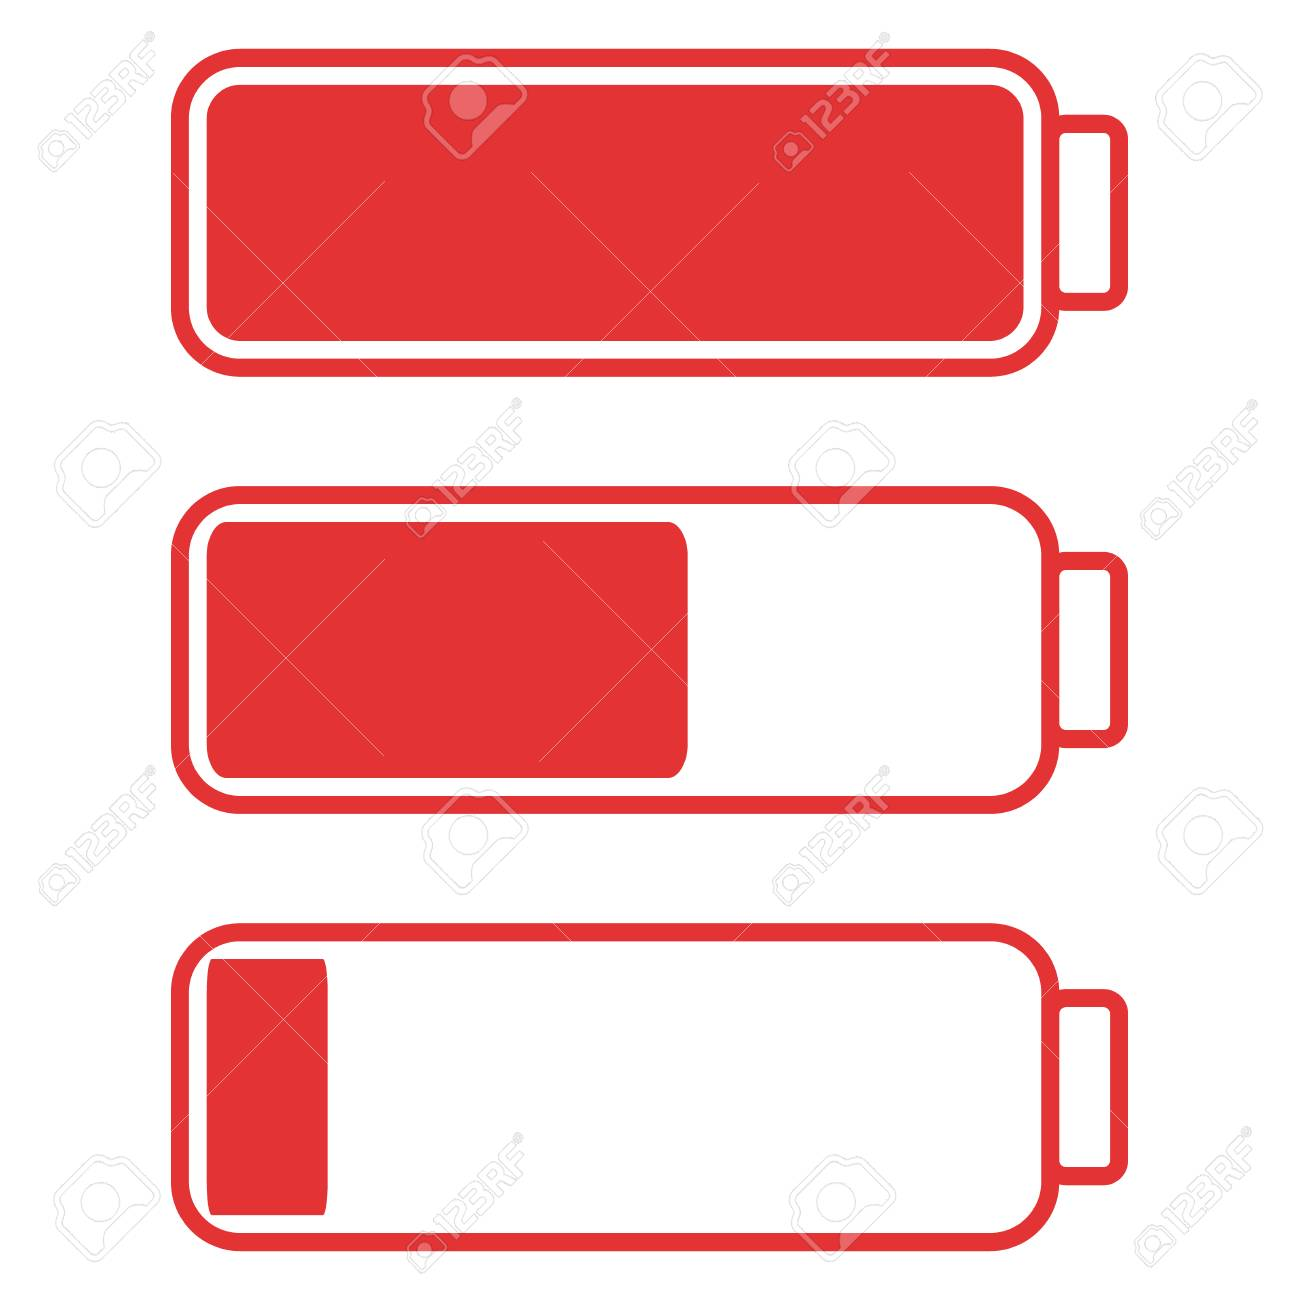 Smartphone or cell phone low battery icon low energy symbol smartphone or cell phone low battery icon low energy symbol flat illustration stock biocorpaavc Images